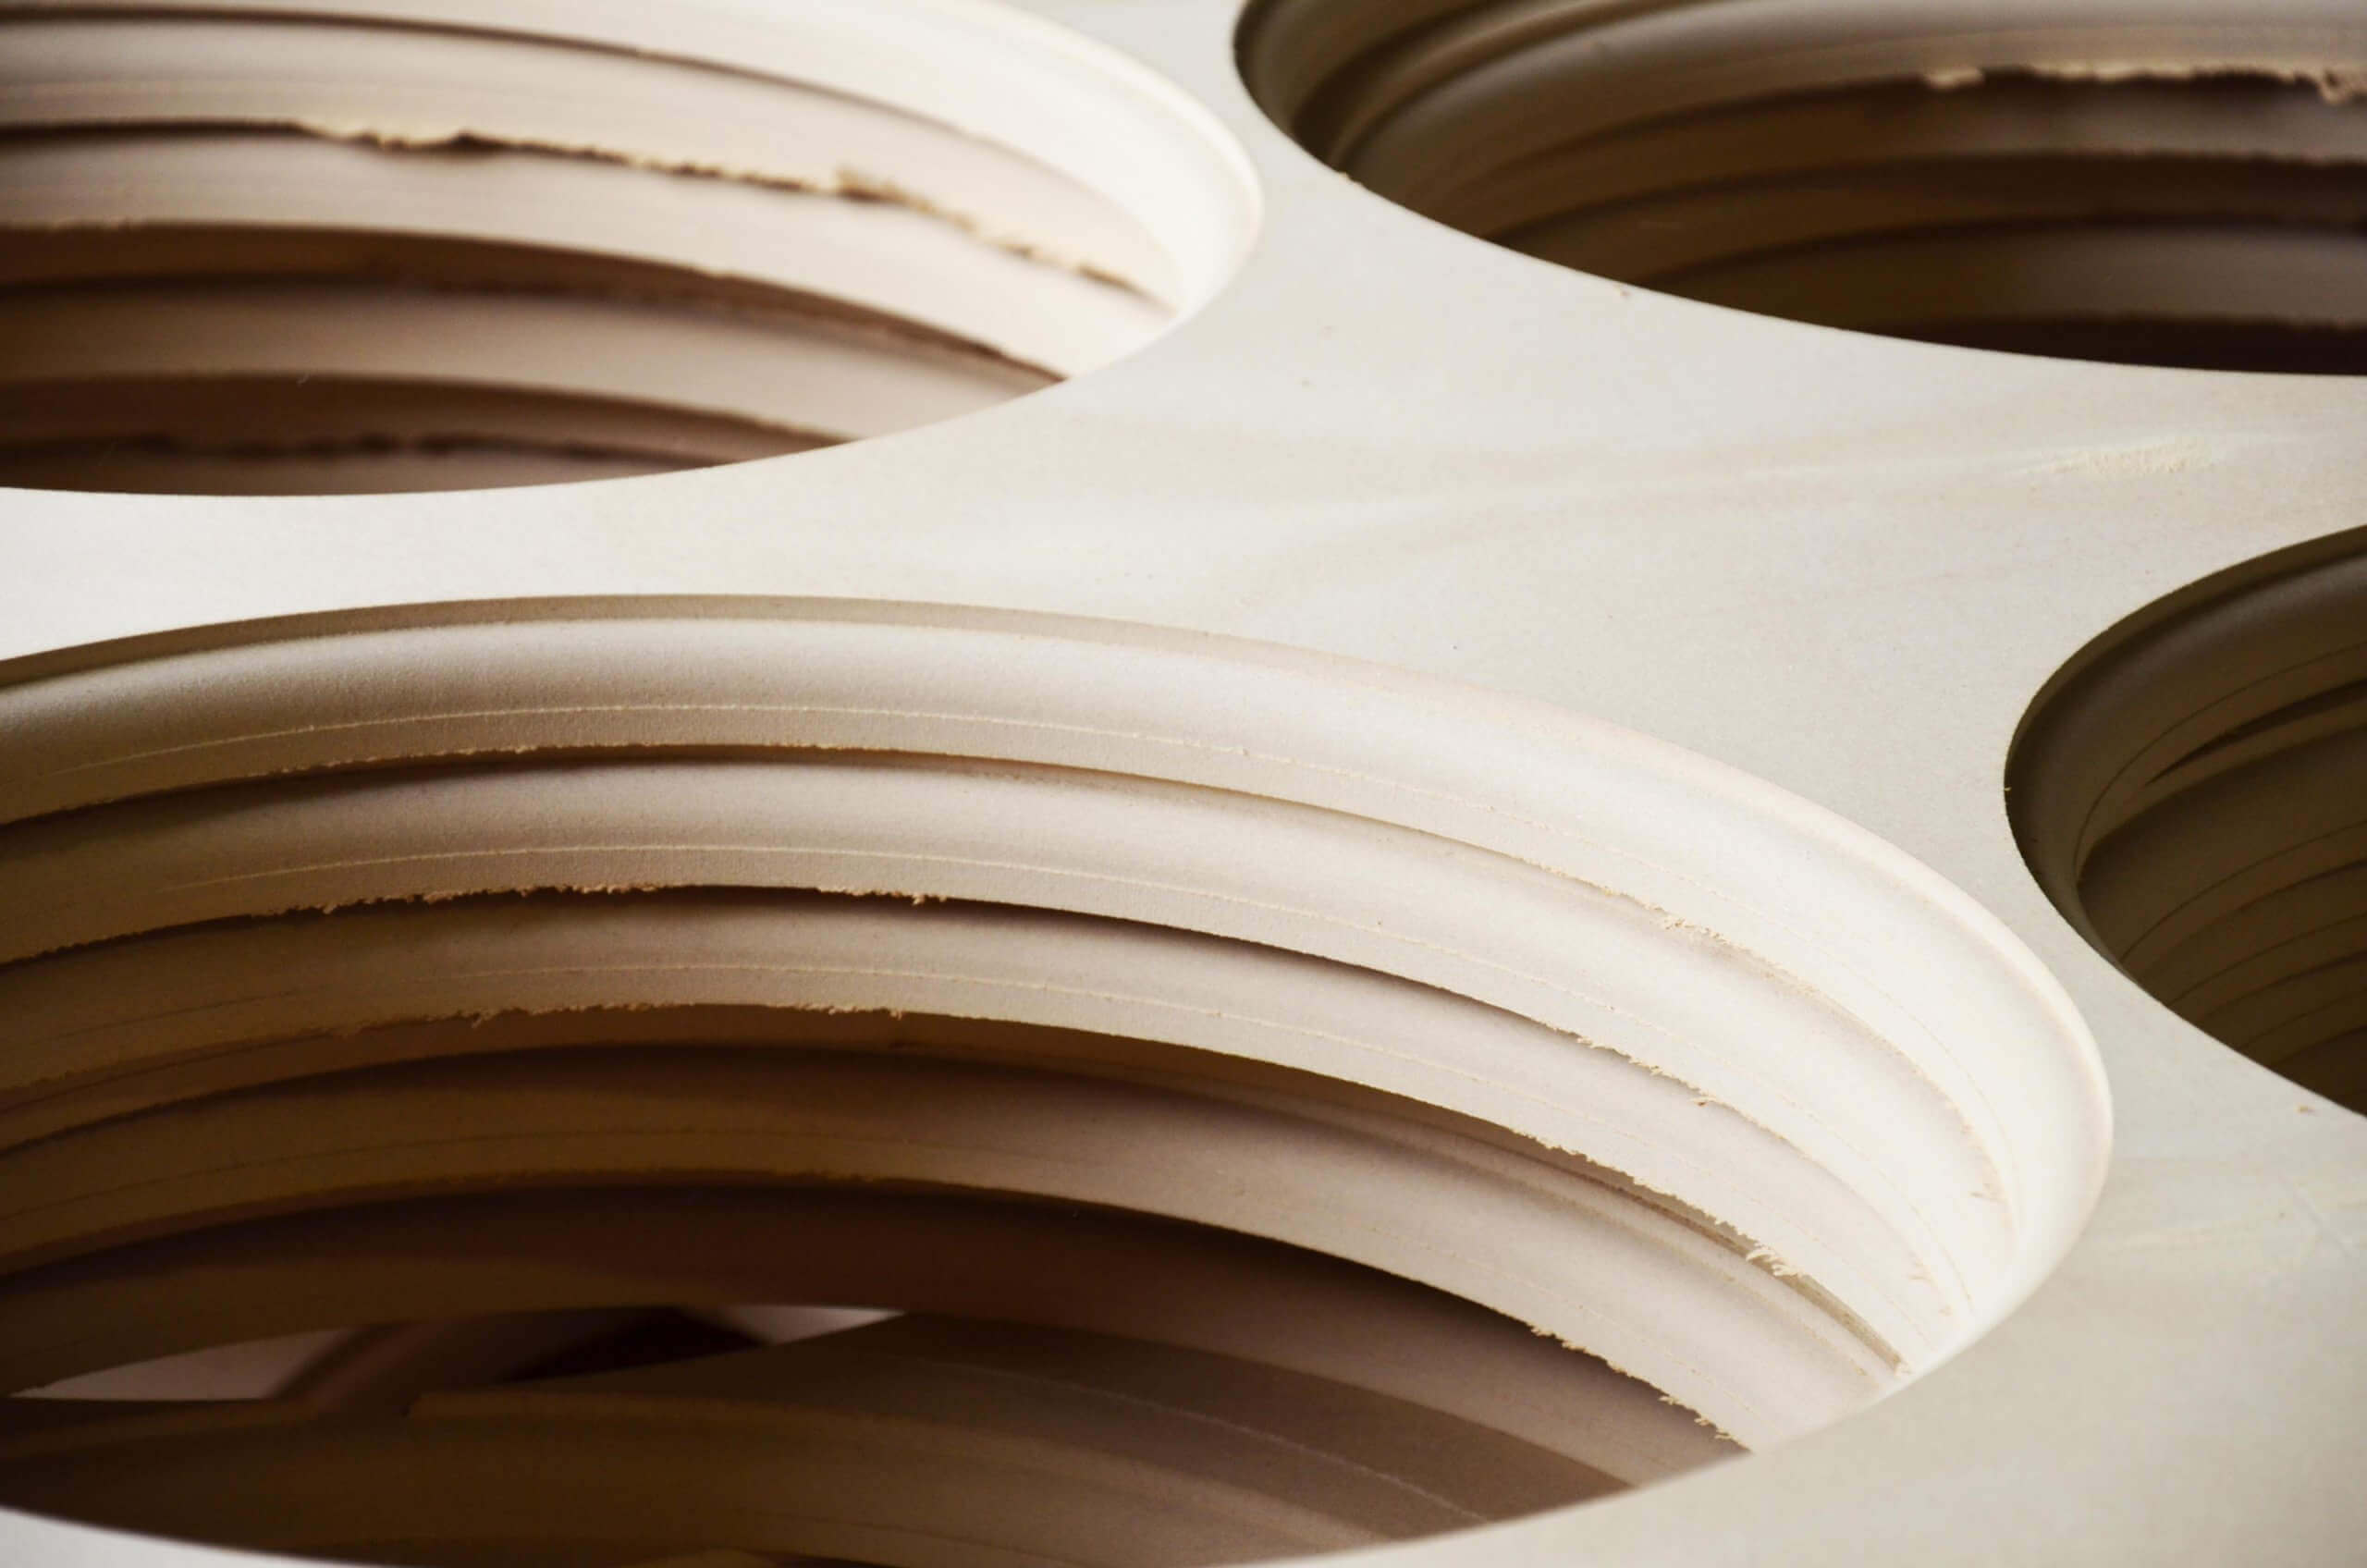 Wood scrap like MDF boards with punched holes